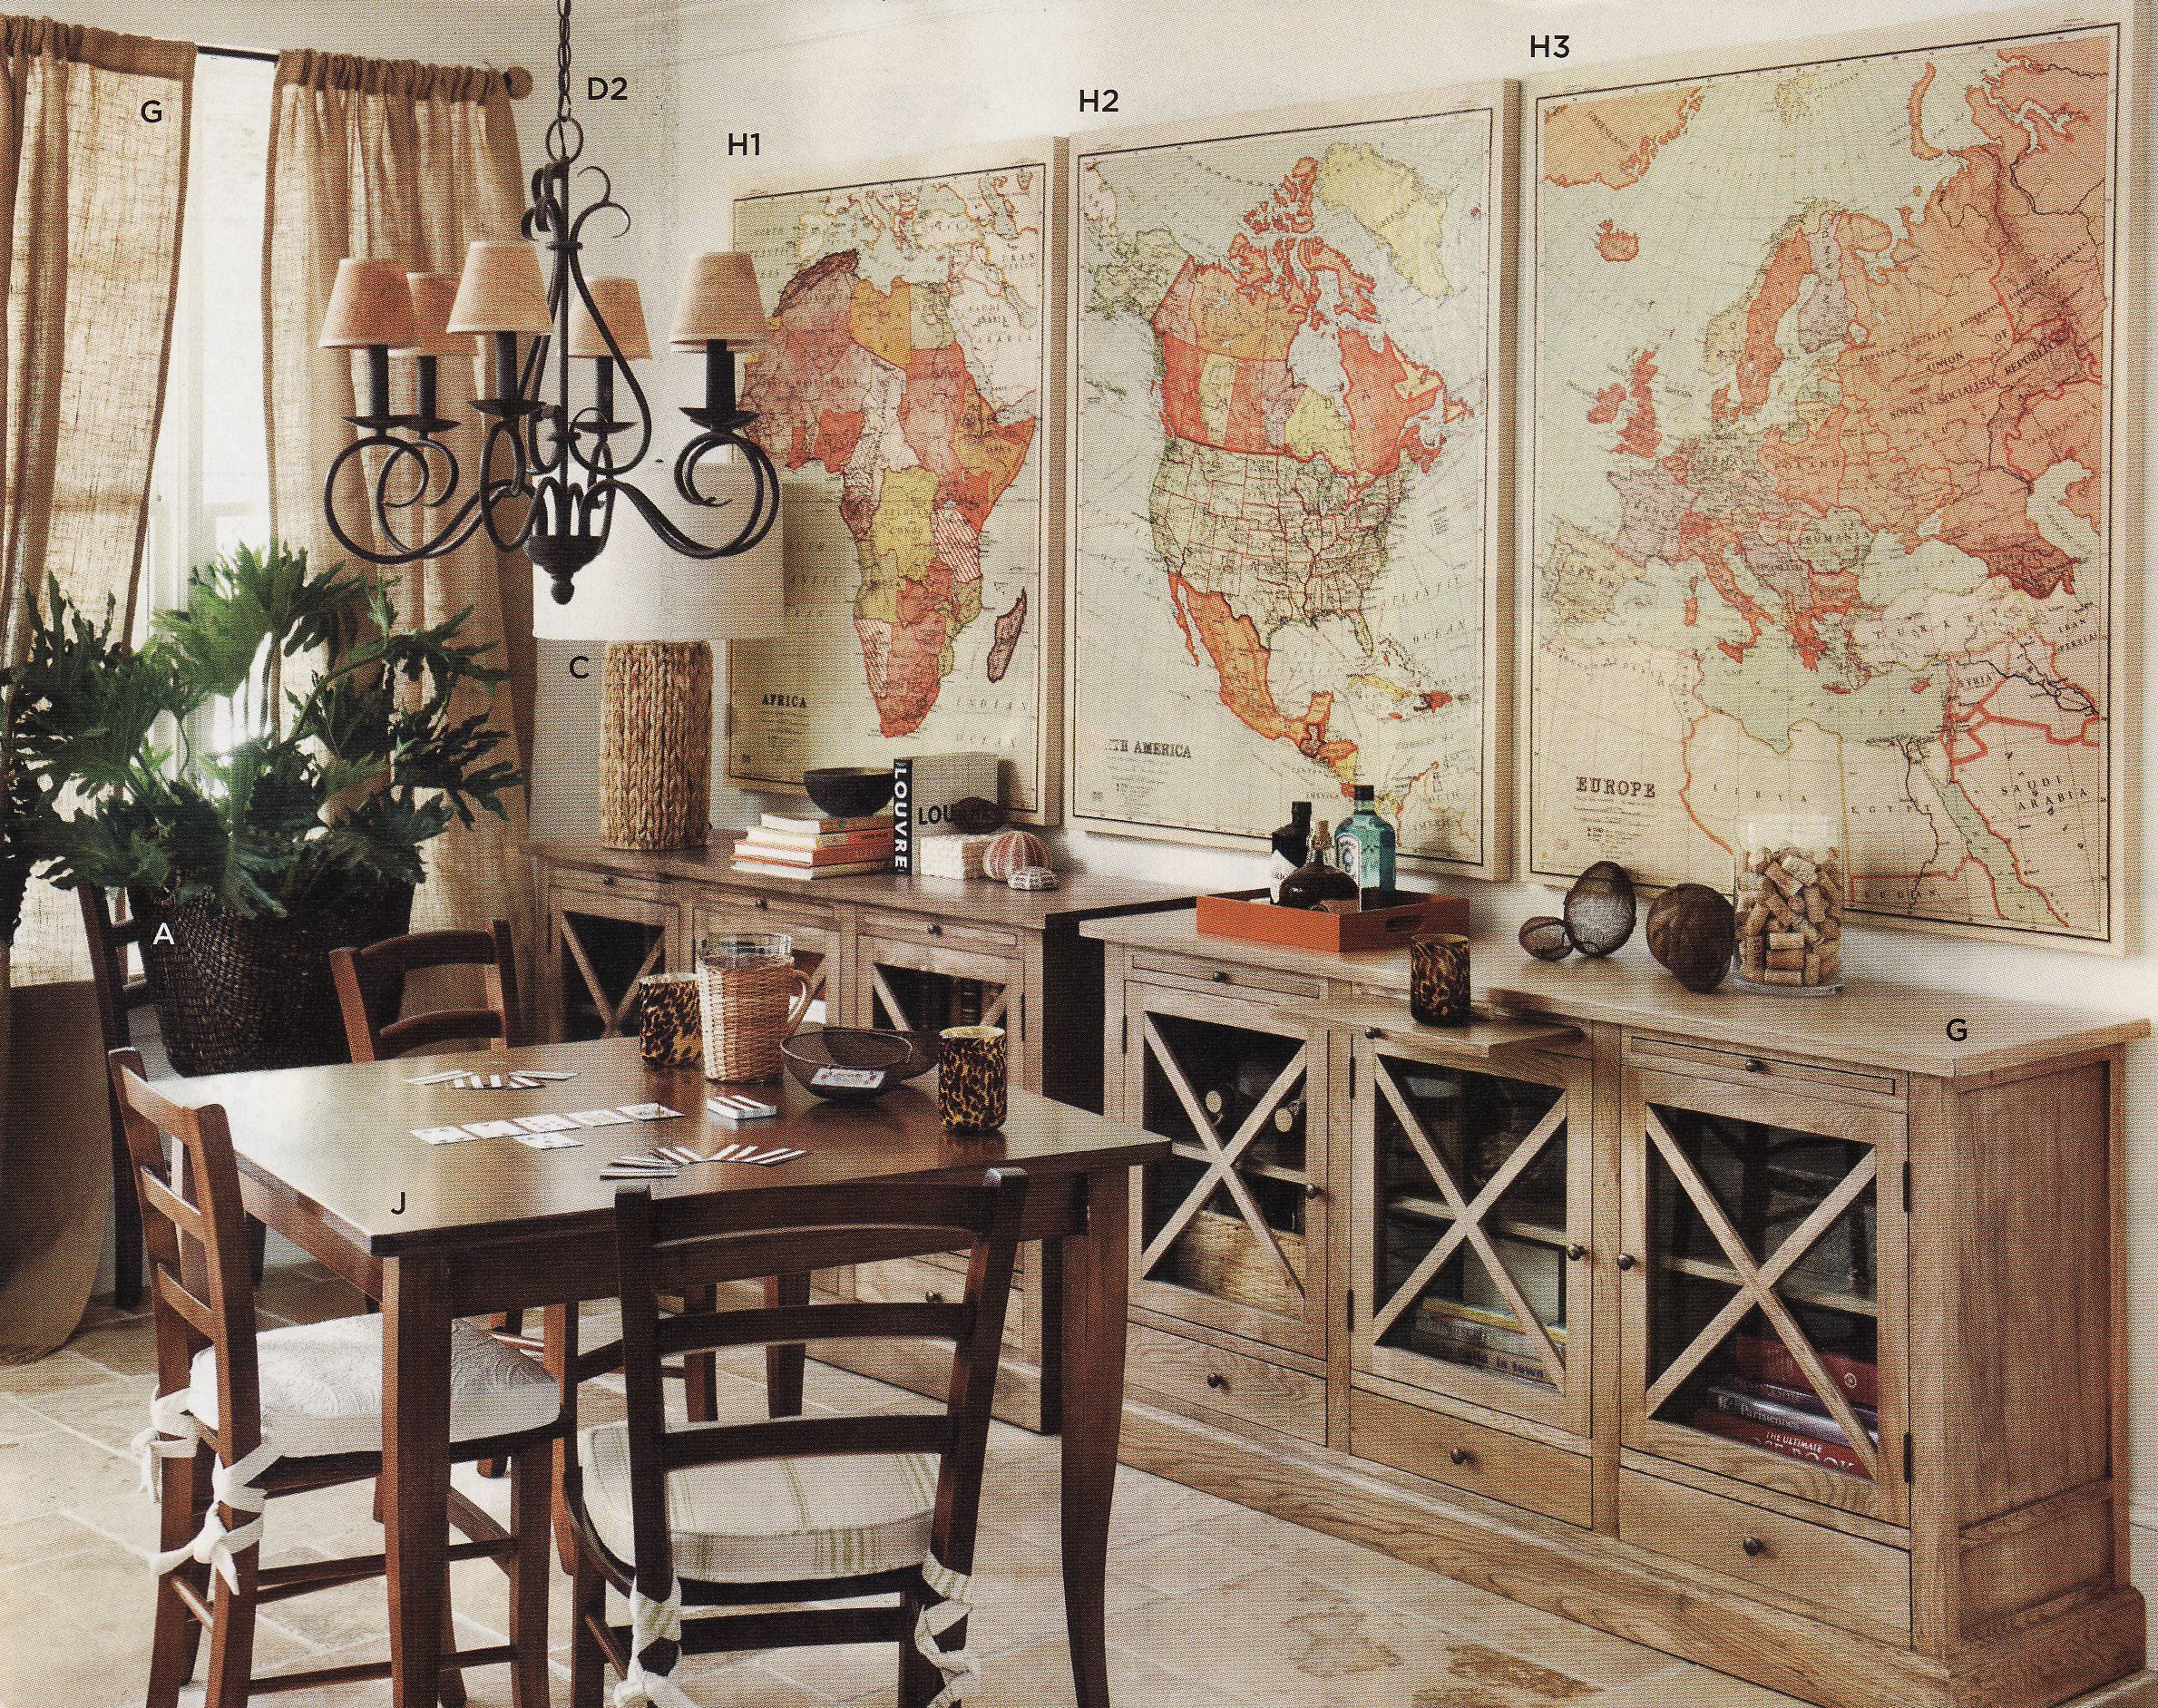 Travel Home Decor travel home decor re re Vintage Map Decor Def Doing This And Marking All The Places I Travel To Using